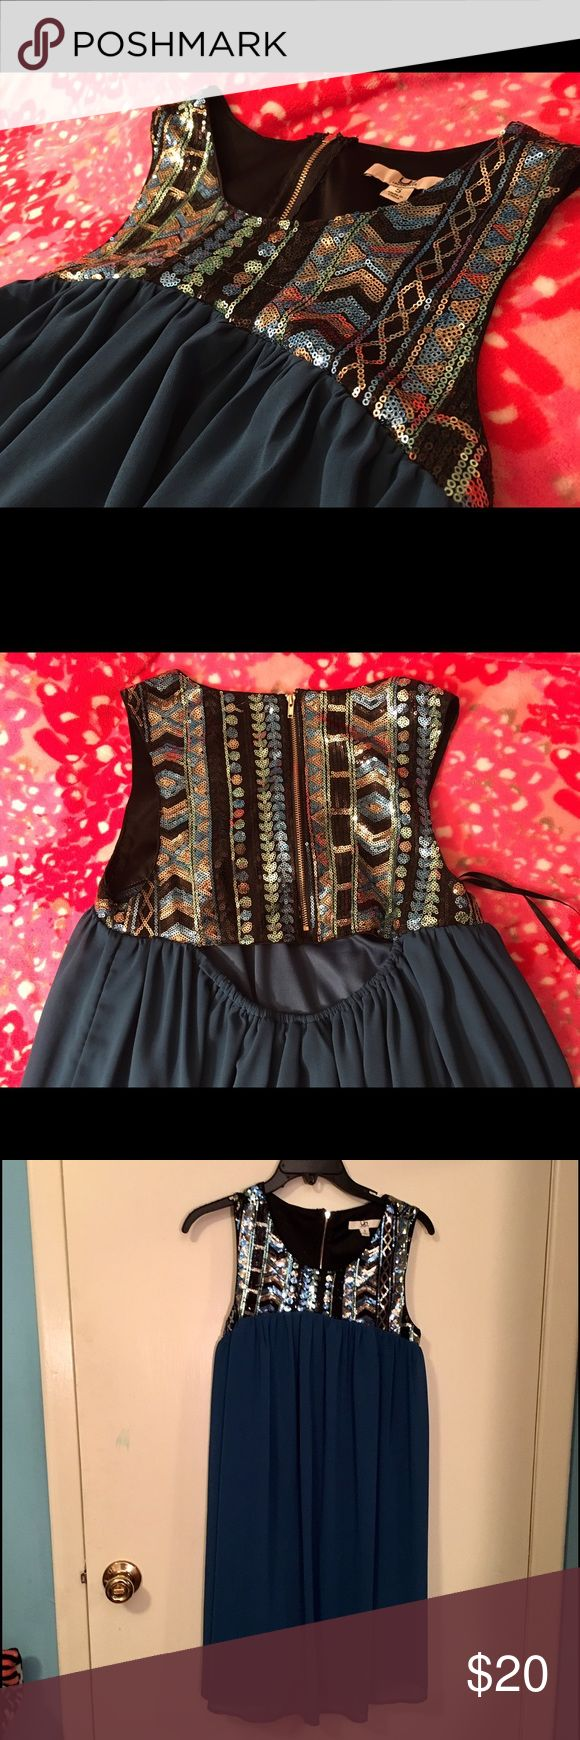 Sequin party dress 👗 Sequin dress. Top half is black with black, gold, and blue sequins which create Aztec and boho patterns. The bottom half is blue fabric. Great for prom or a party dress. I'm 5 ft and the dress is a little above my knees. Please comment with any questions! Ya Los Angeles Dresses Prom